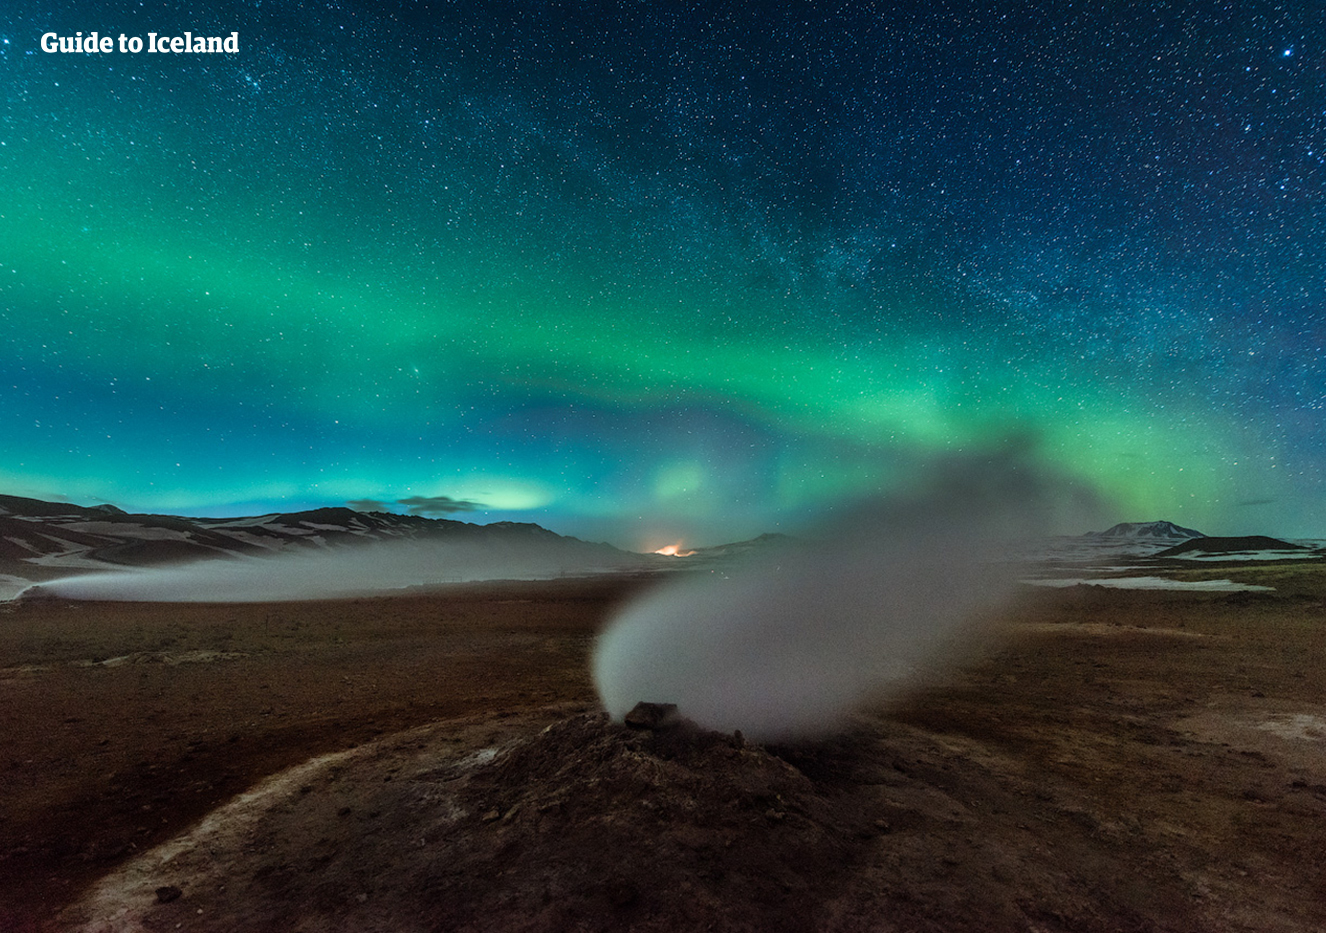 Námaskarð Pass is a geothermal area, pictured here in winter under the Northern Lights.